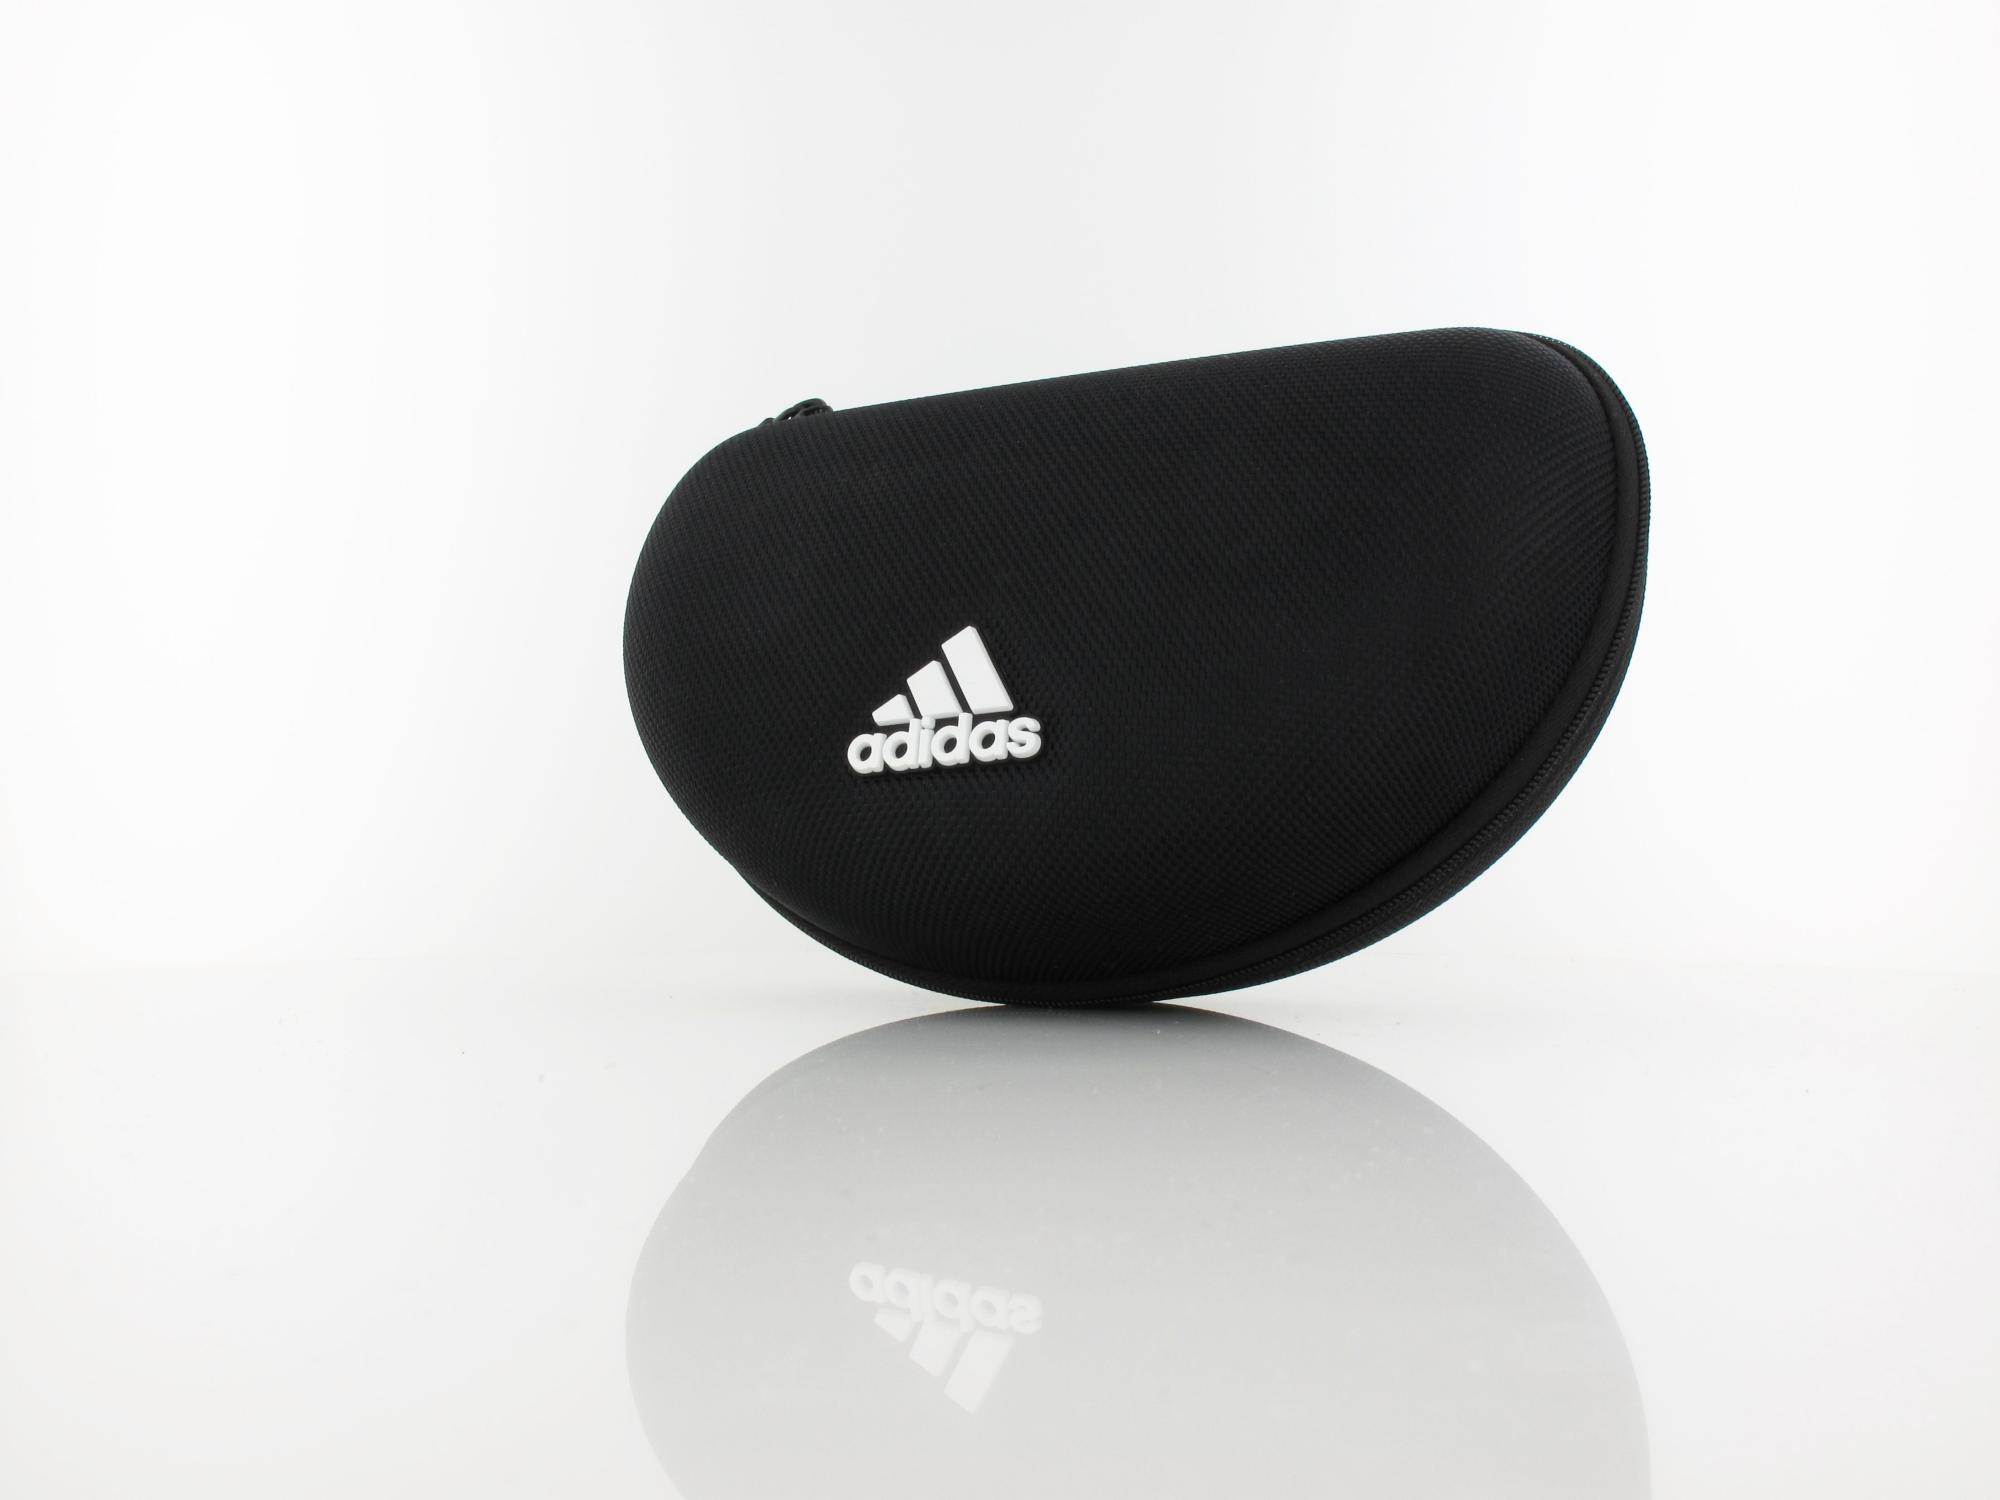 Adidas | SP0005 01A | polished black / grey